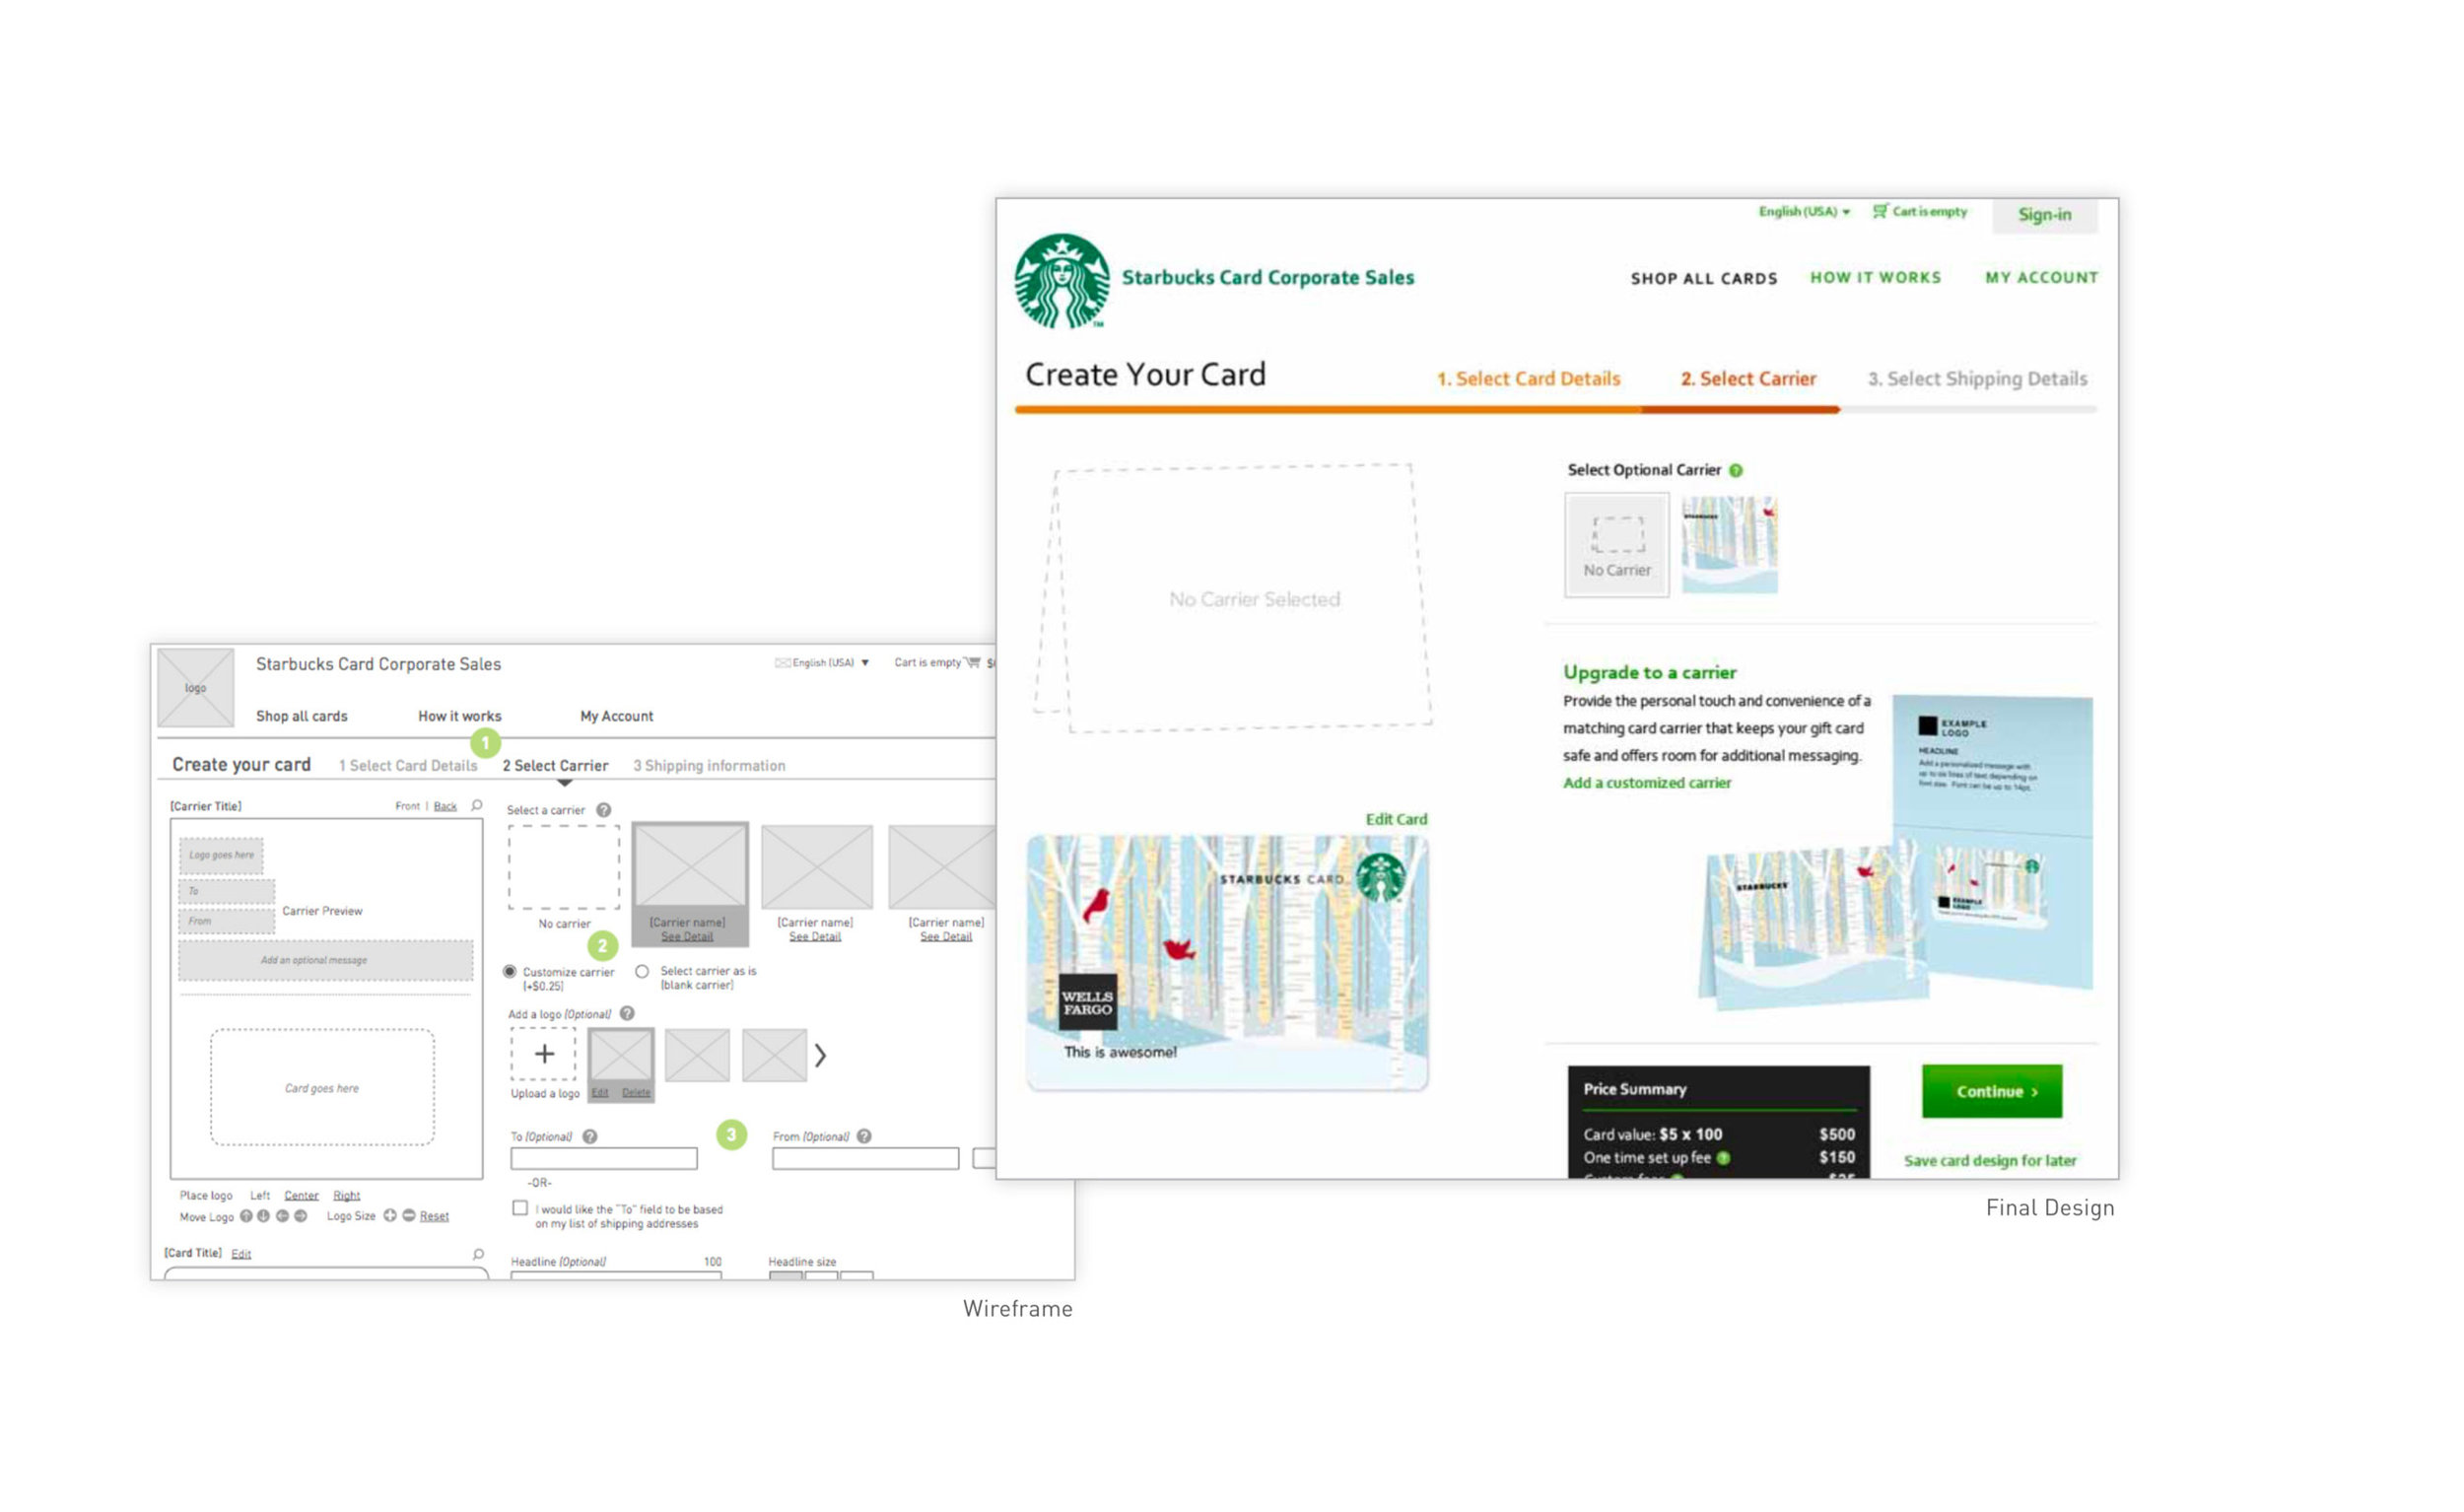 PROJECT OBJECTIVES - Create a Self-Serve Digital experience The original website provided as a catalog of options, but the ordering process was fulfilled strictly by telephone a solution that could be handled entirely on the web. Make Complex orders feel simple With the vast number of options available to Starbucks corporate customers, it was important to bring the options into a new experience in a way that would feel just as simple as speaking to a representative via phone.